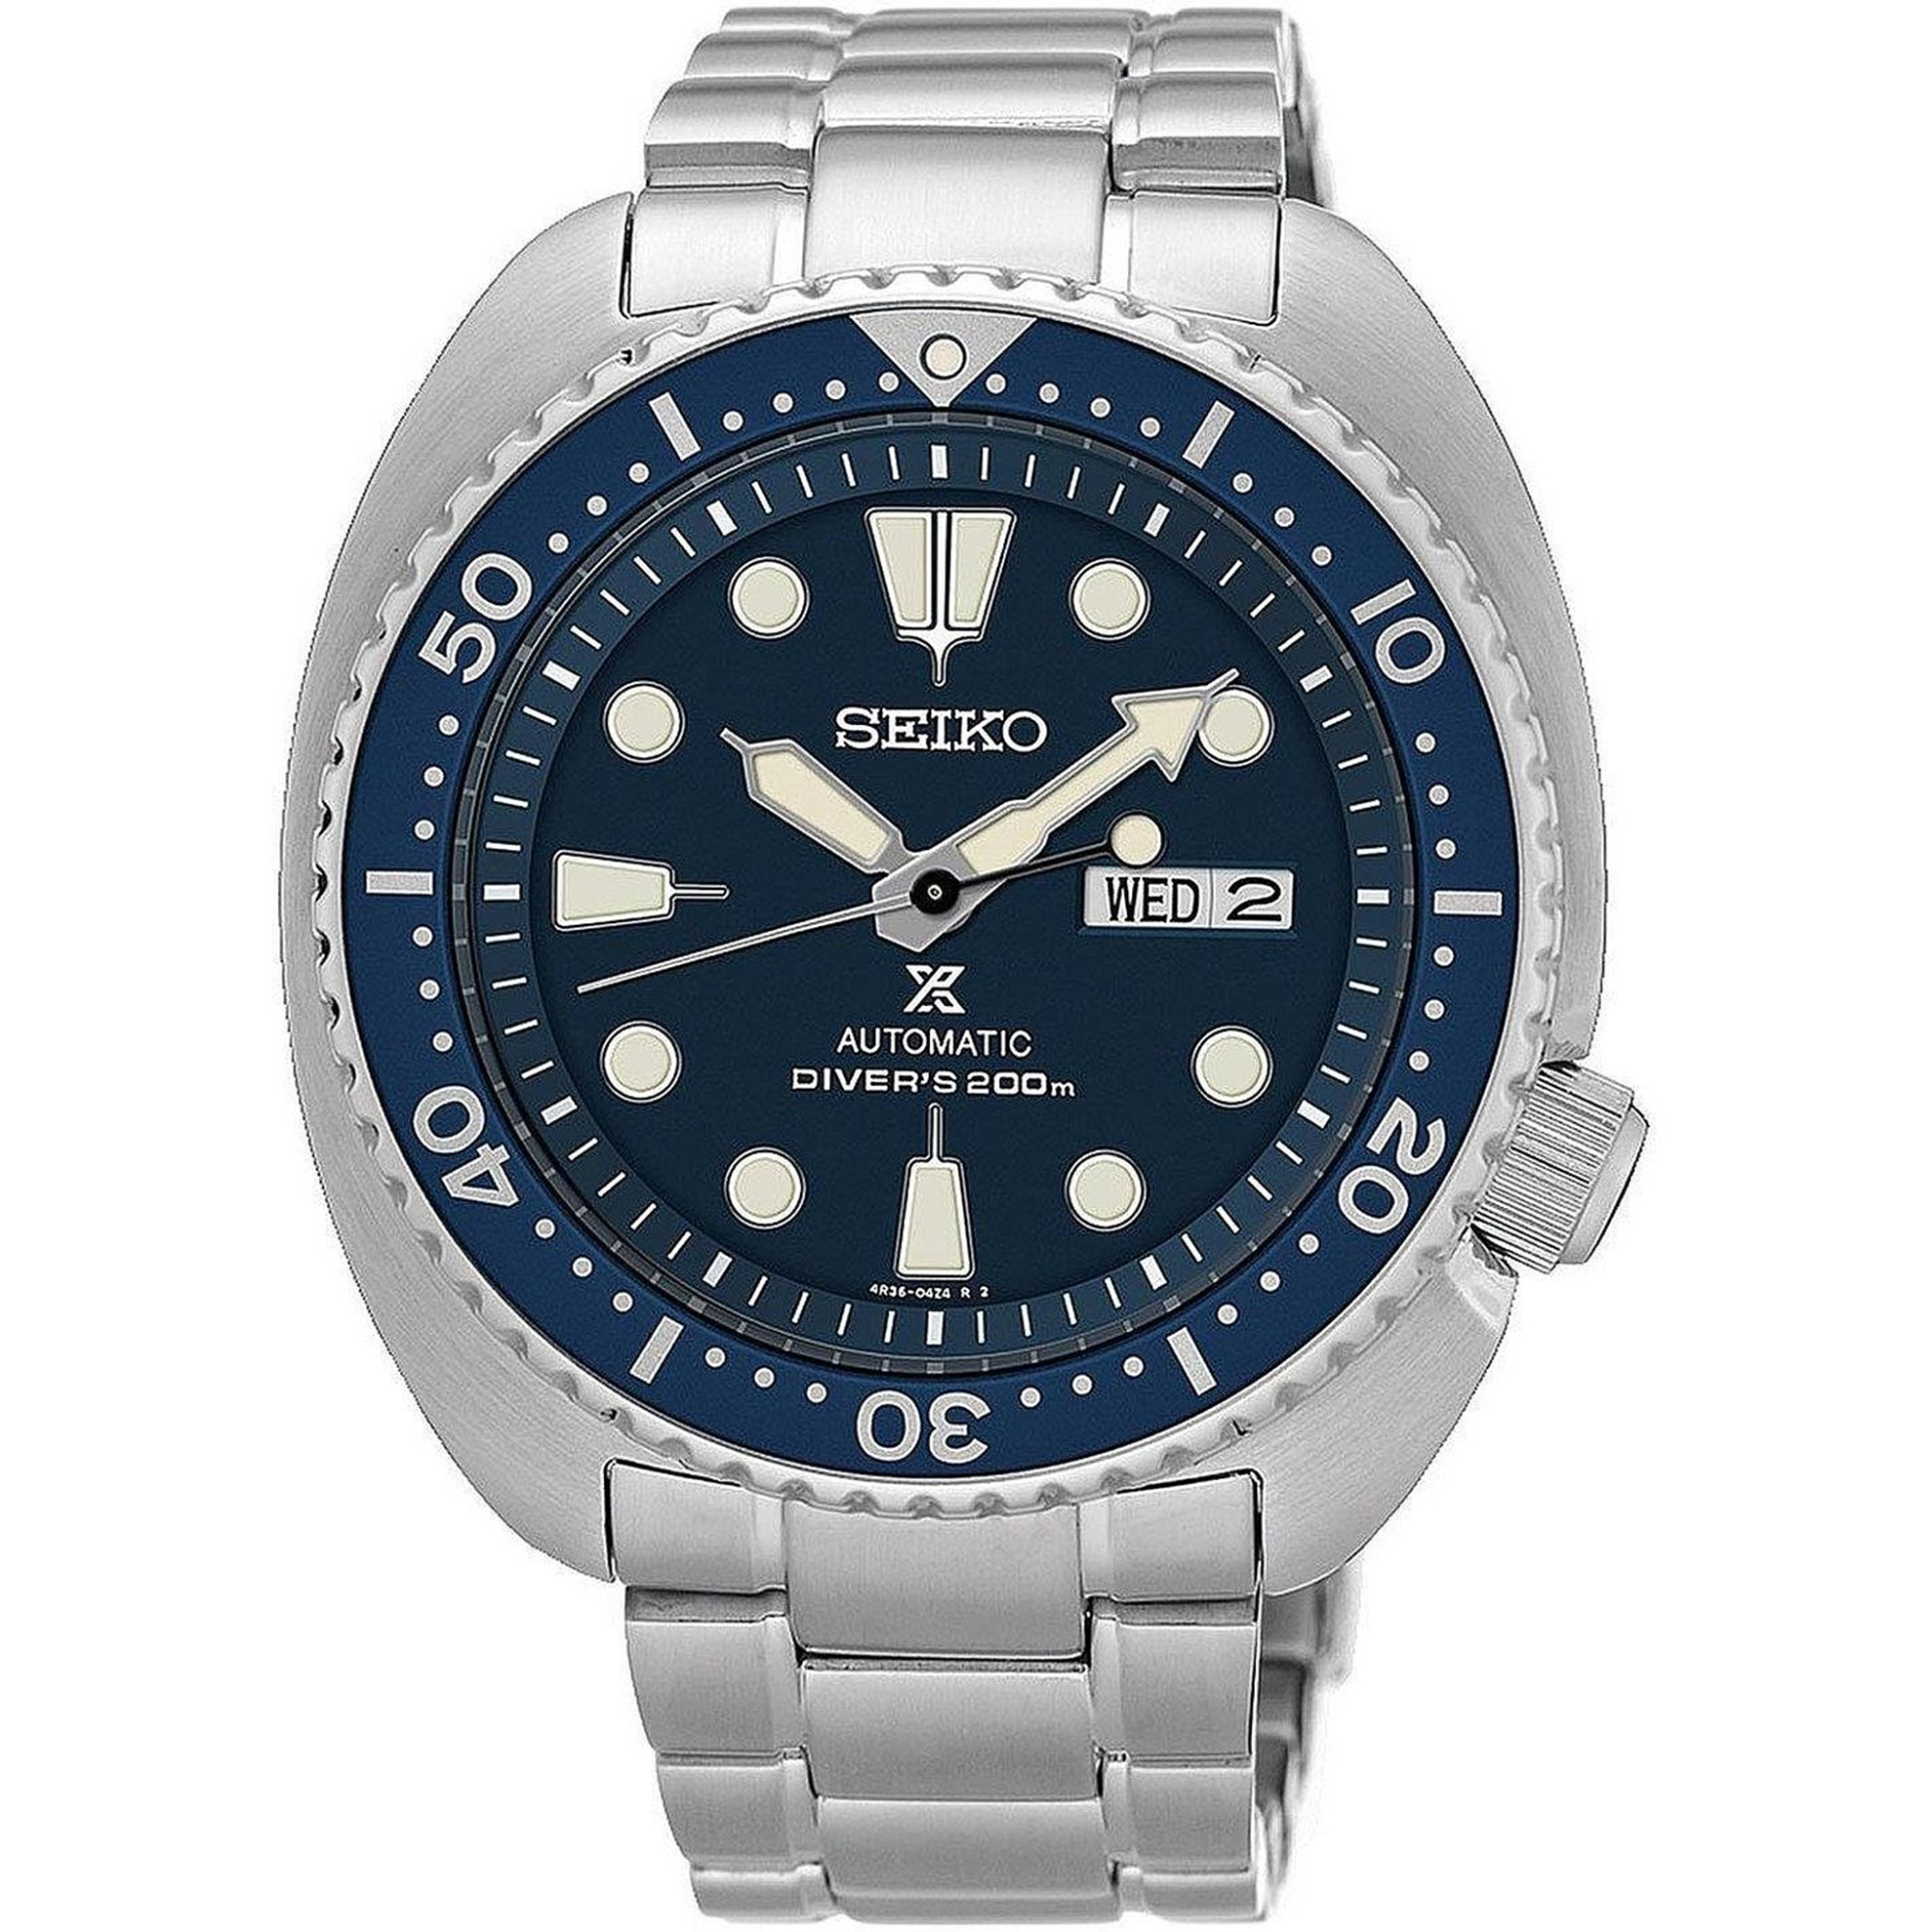 Seiko SRP773K1 Seiko Turtle Diver Automatic Stainless Steel Blue Dial